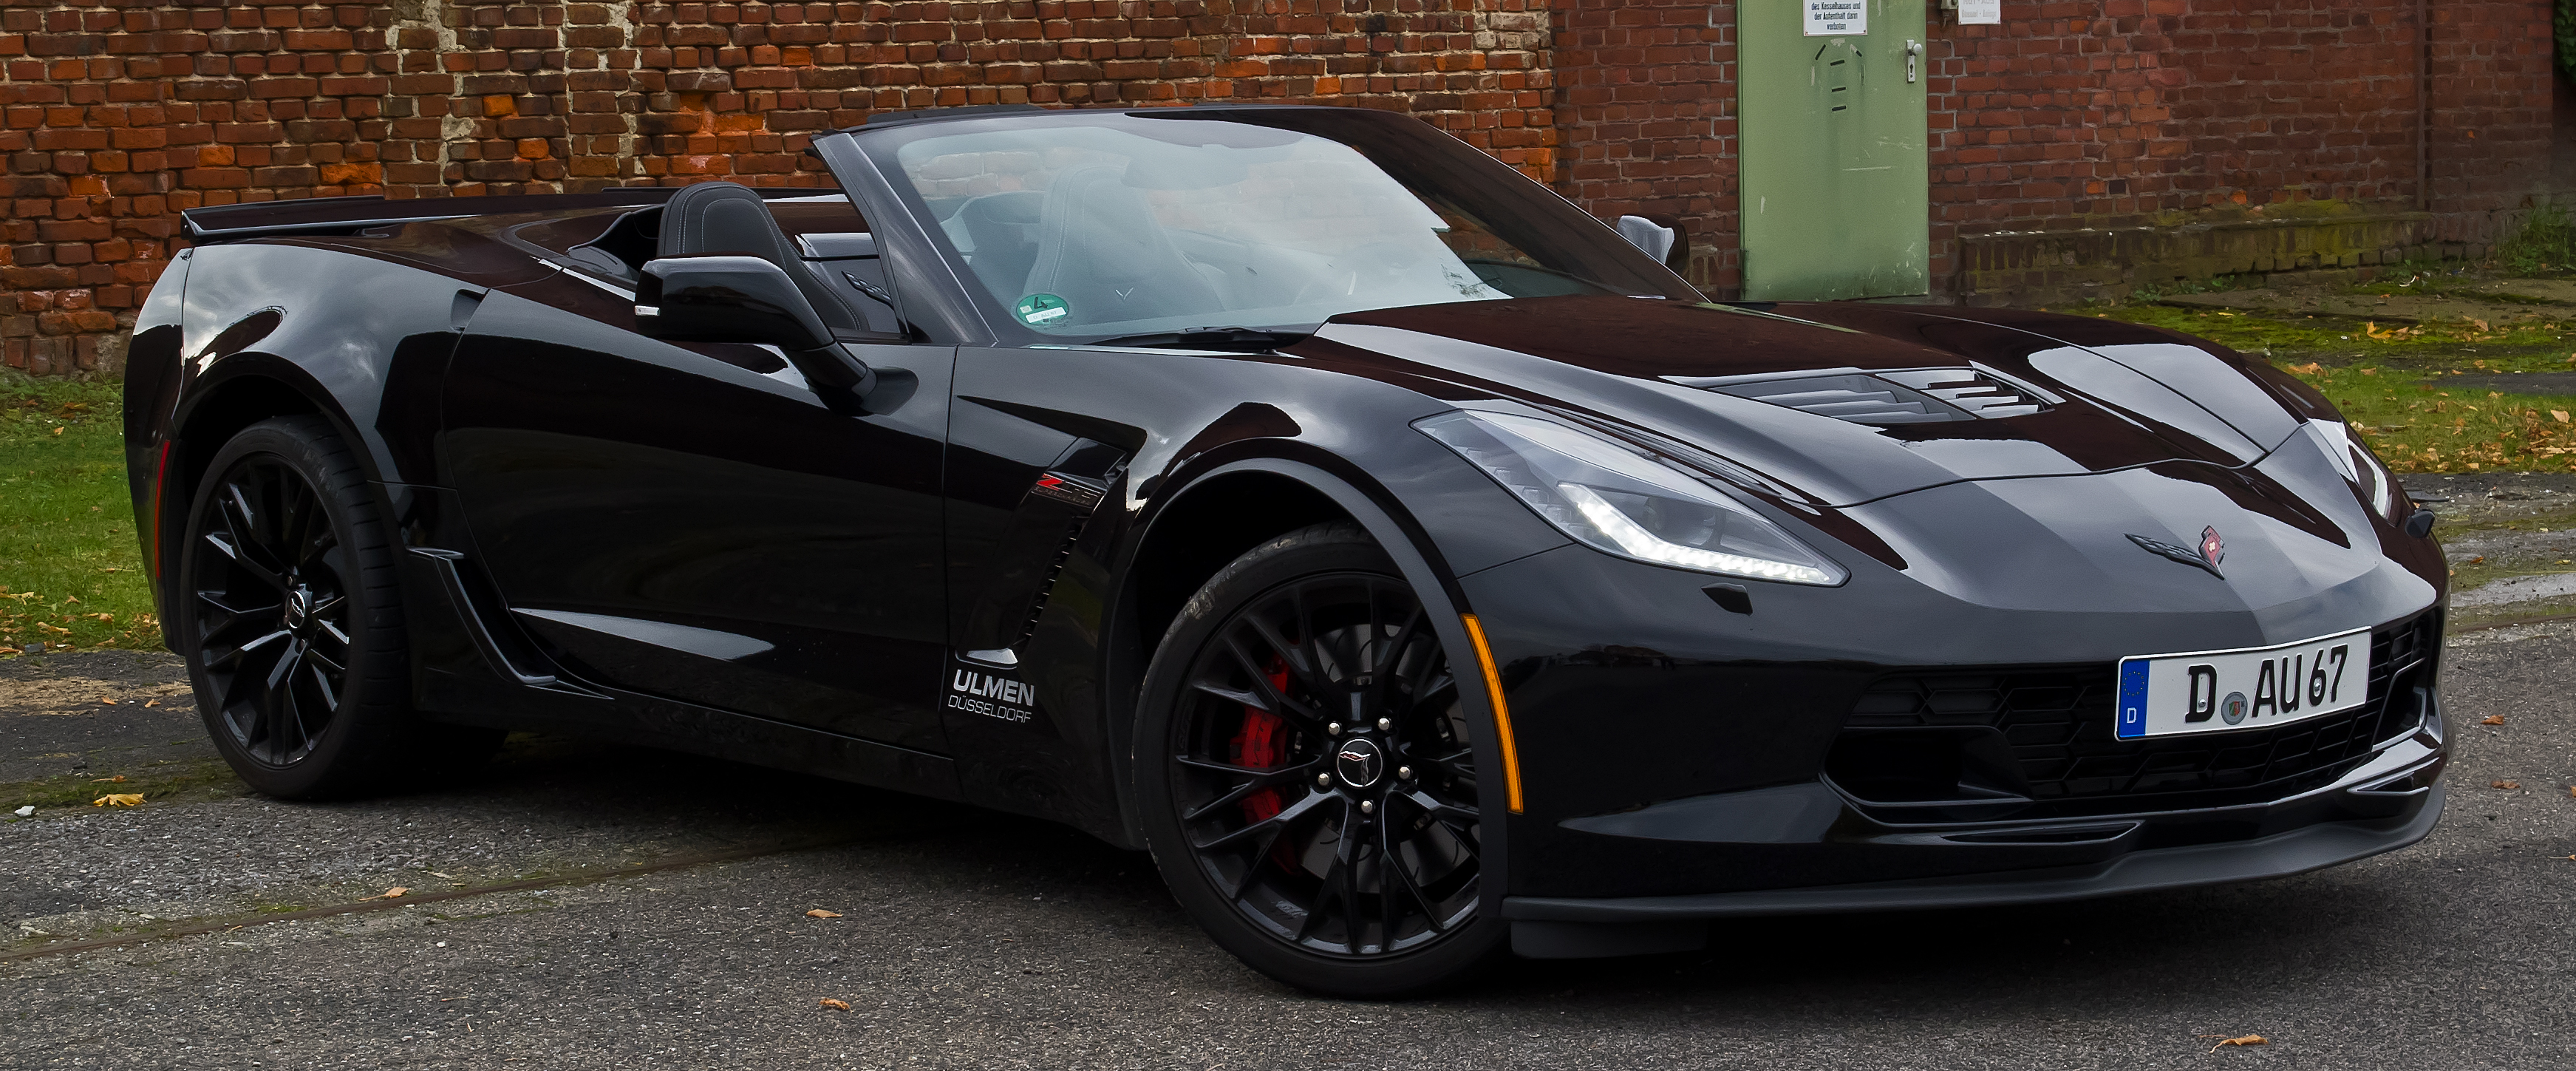 Unique Build 2016 Corvette Z06